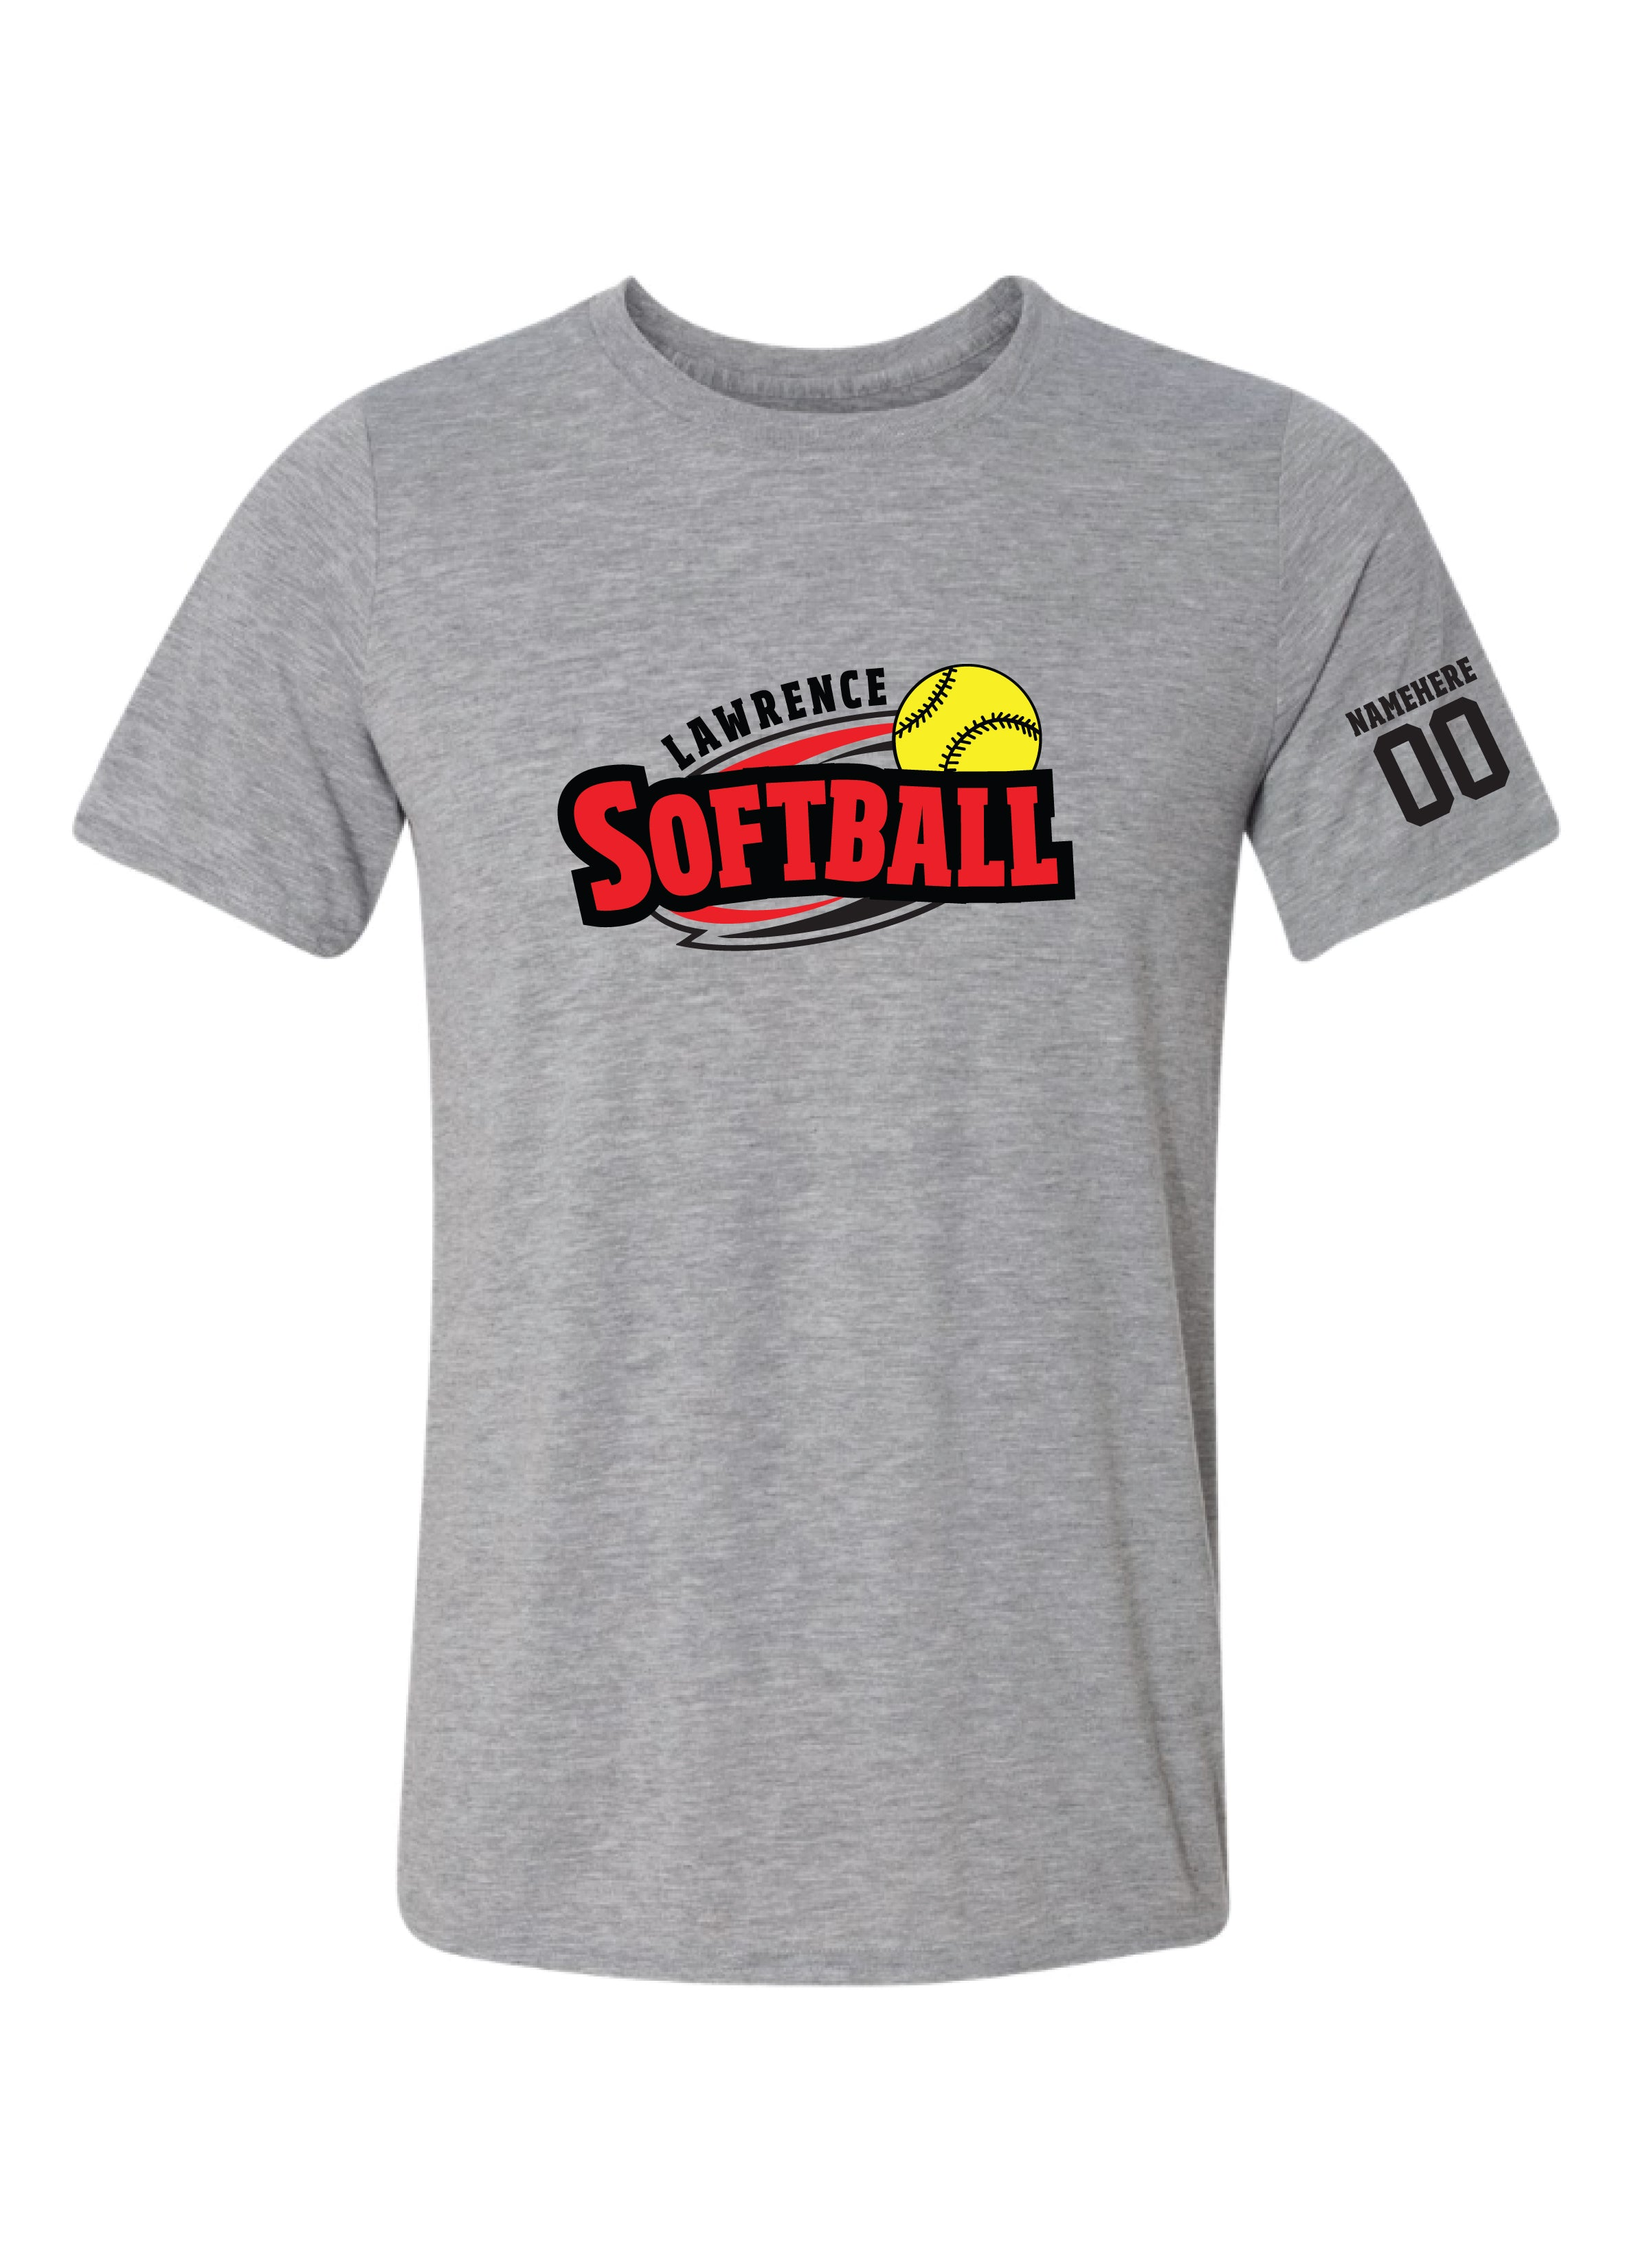 Lawrence Softball Full Color Logo Dri-fit T-Shirt